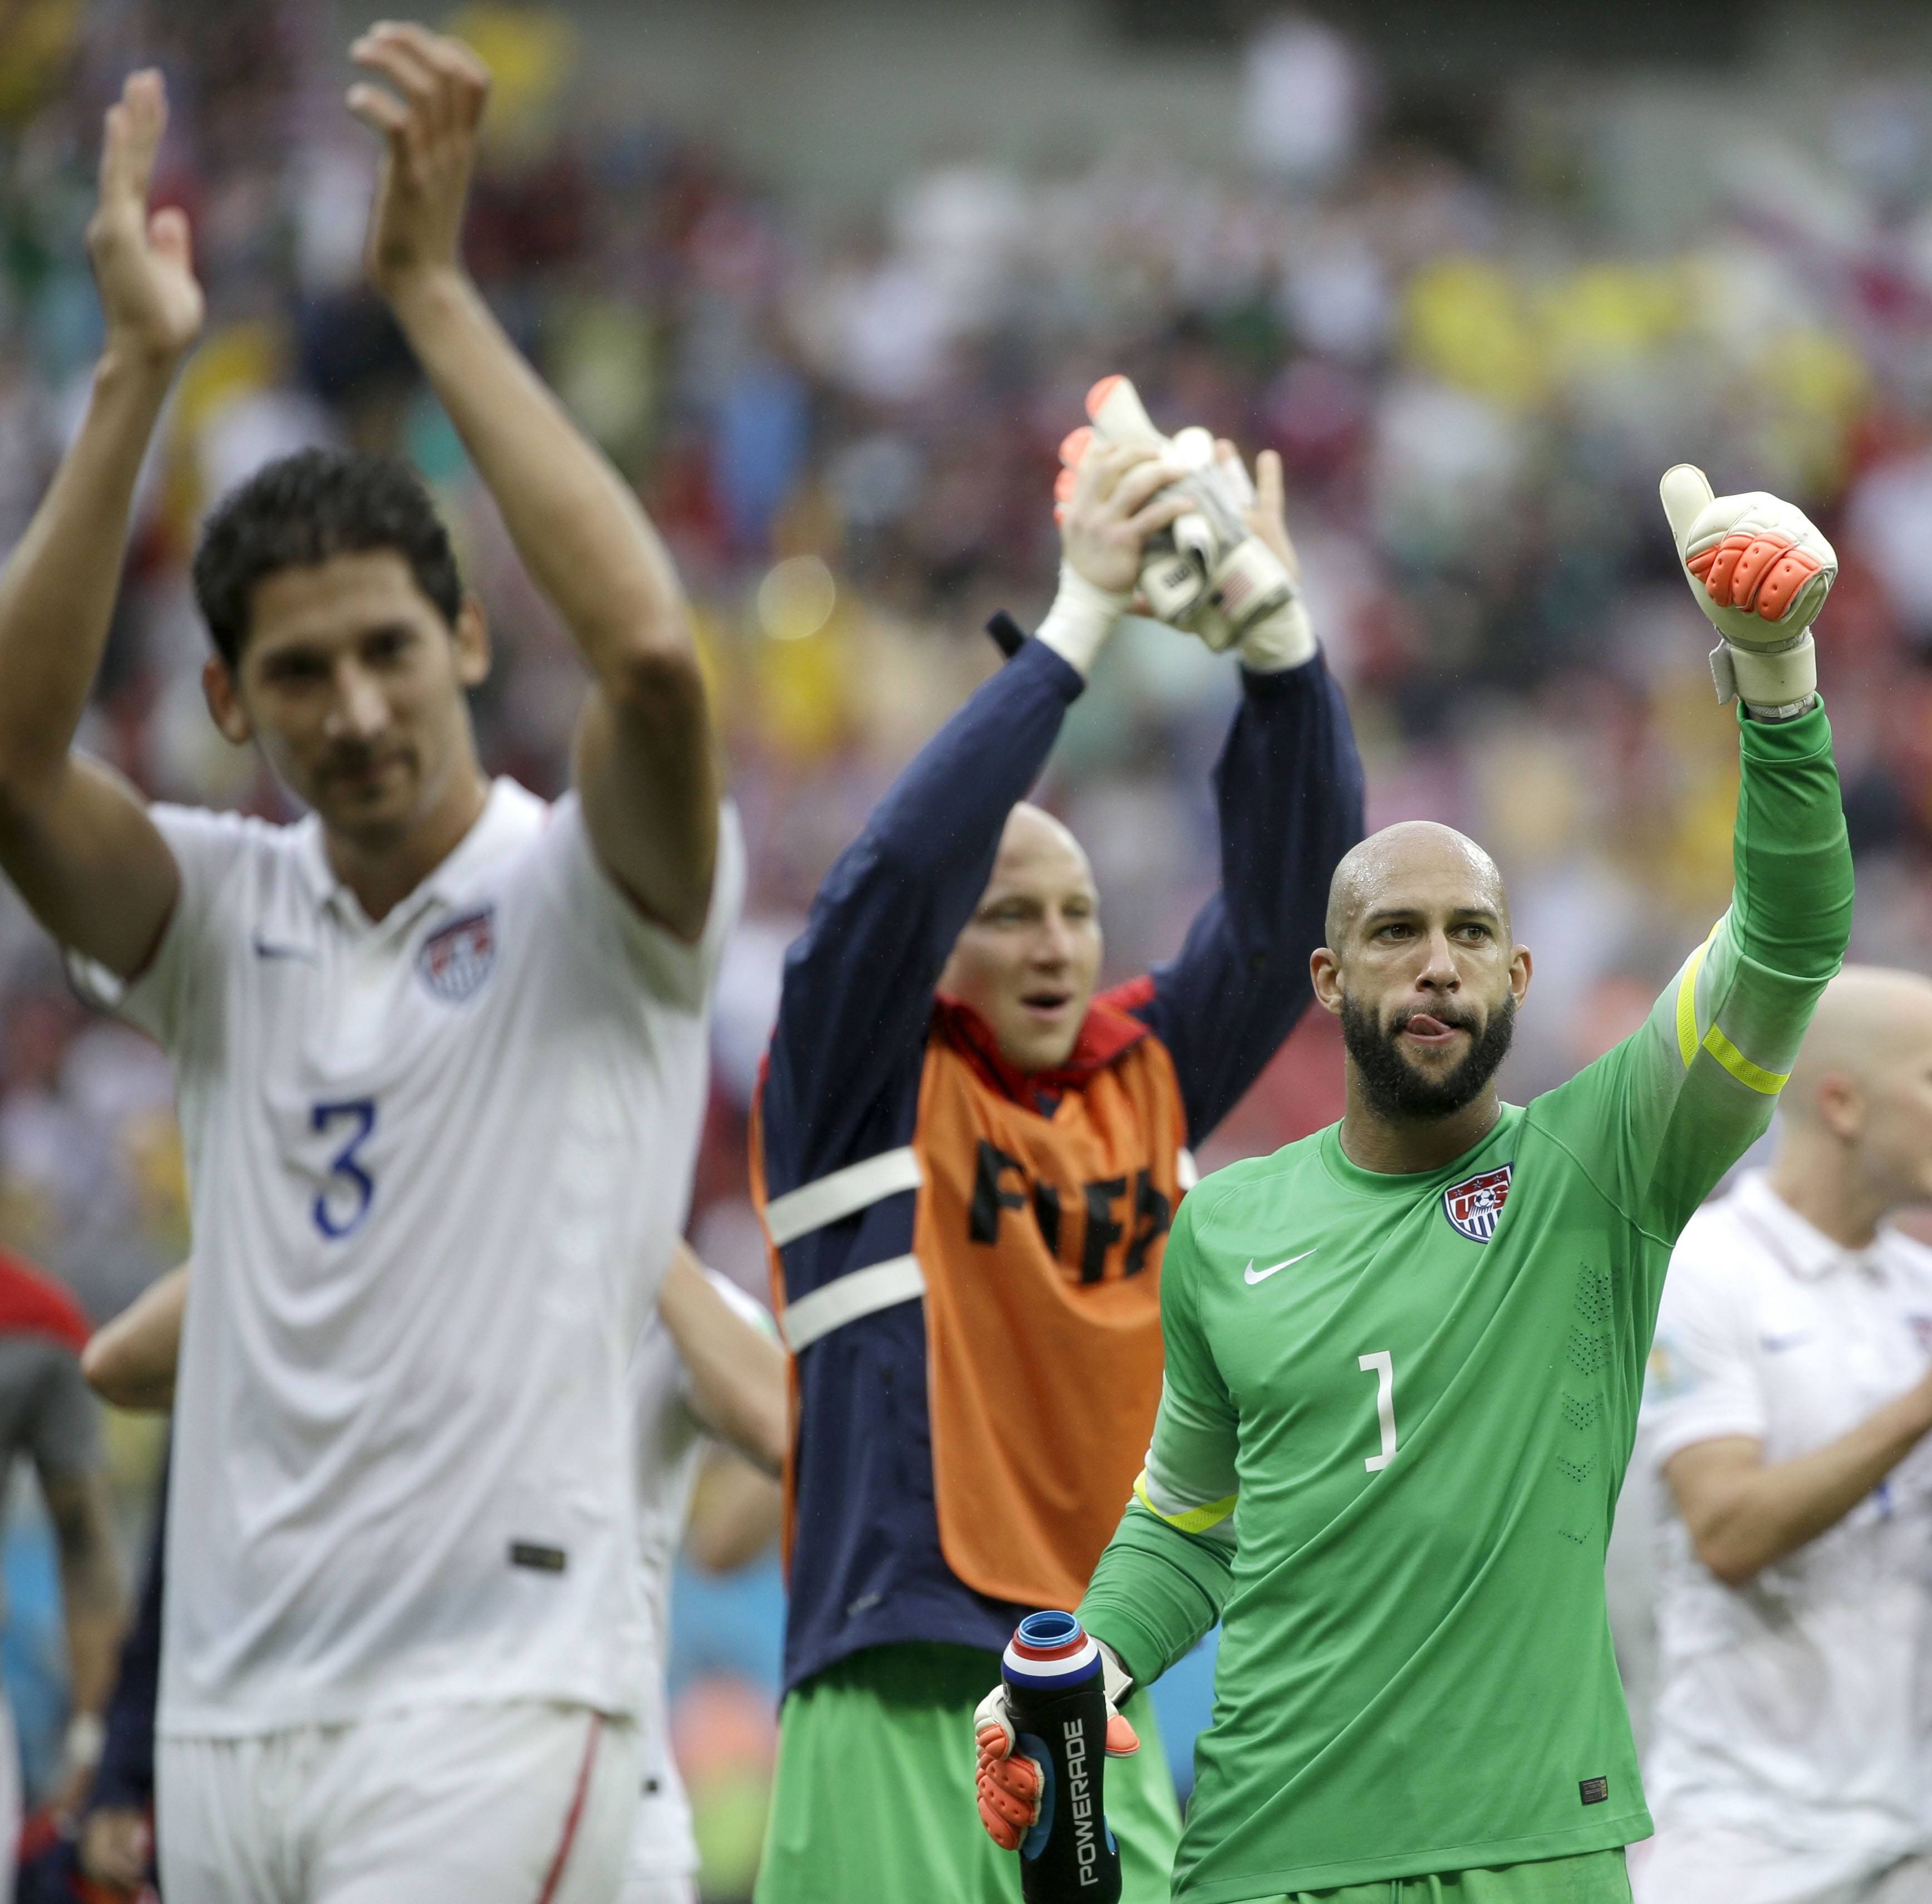 United States' goalkeeper Tim Howard (1) and his teammates celebrate Thursday after making it into the Round of 16 following their 1-0 loss to Germany.